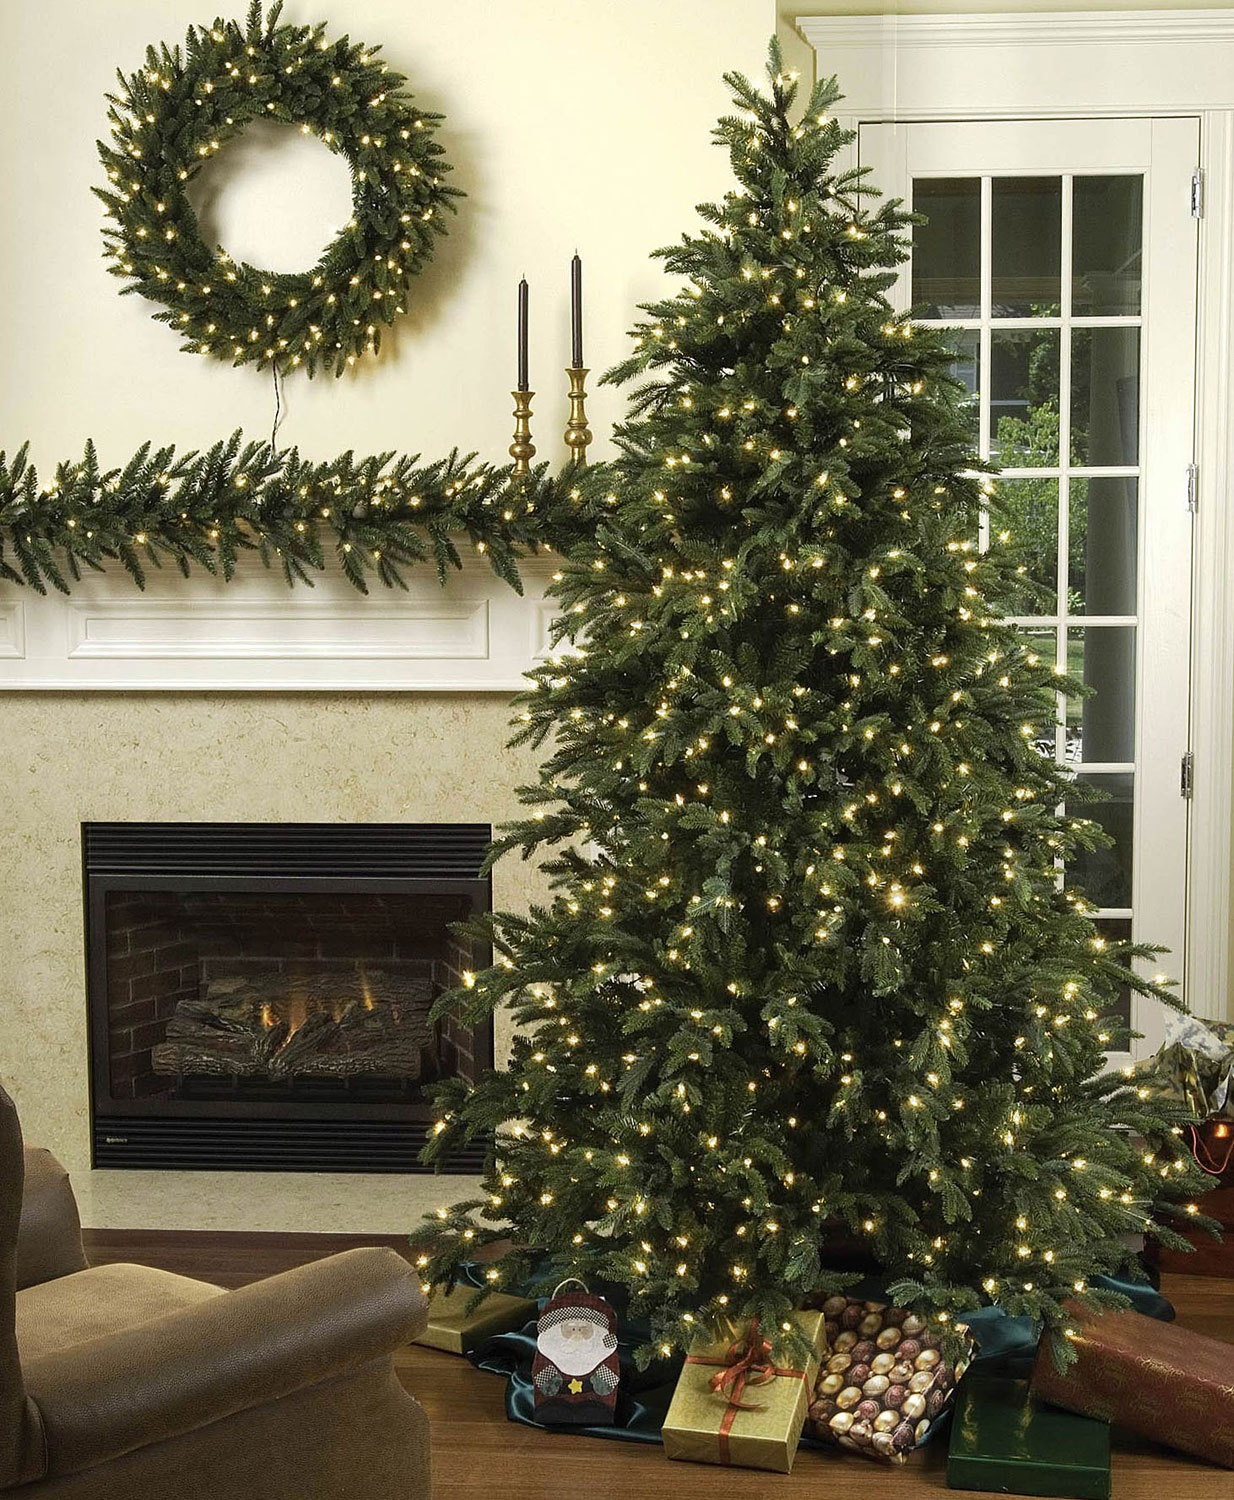 9' Full Carolina Fir Tree, 1300 Multicolored Lamps